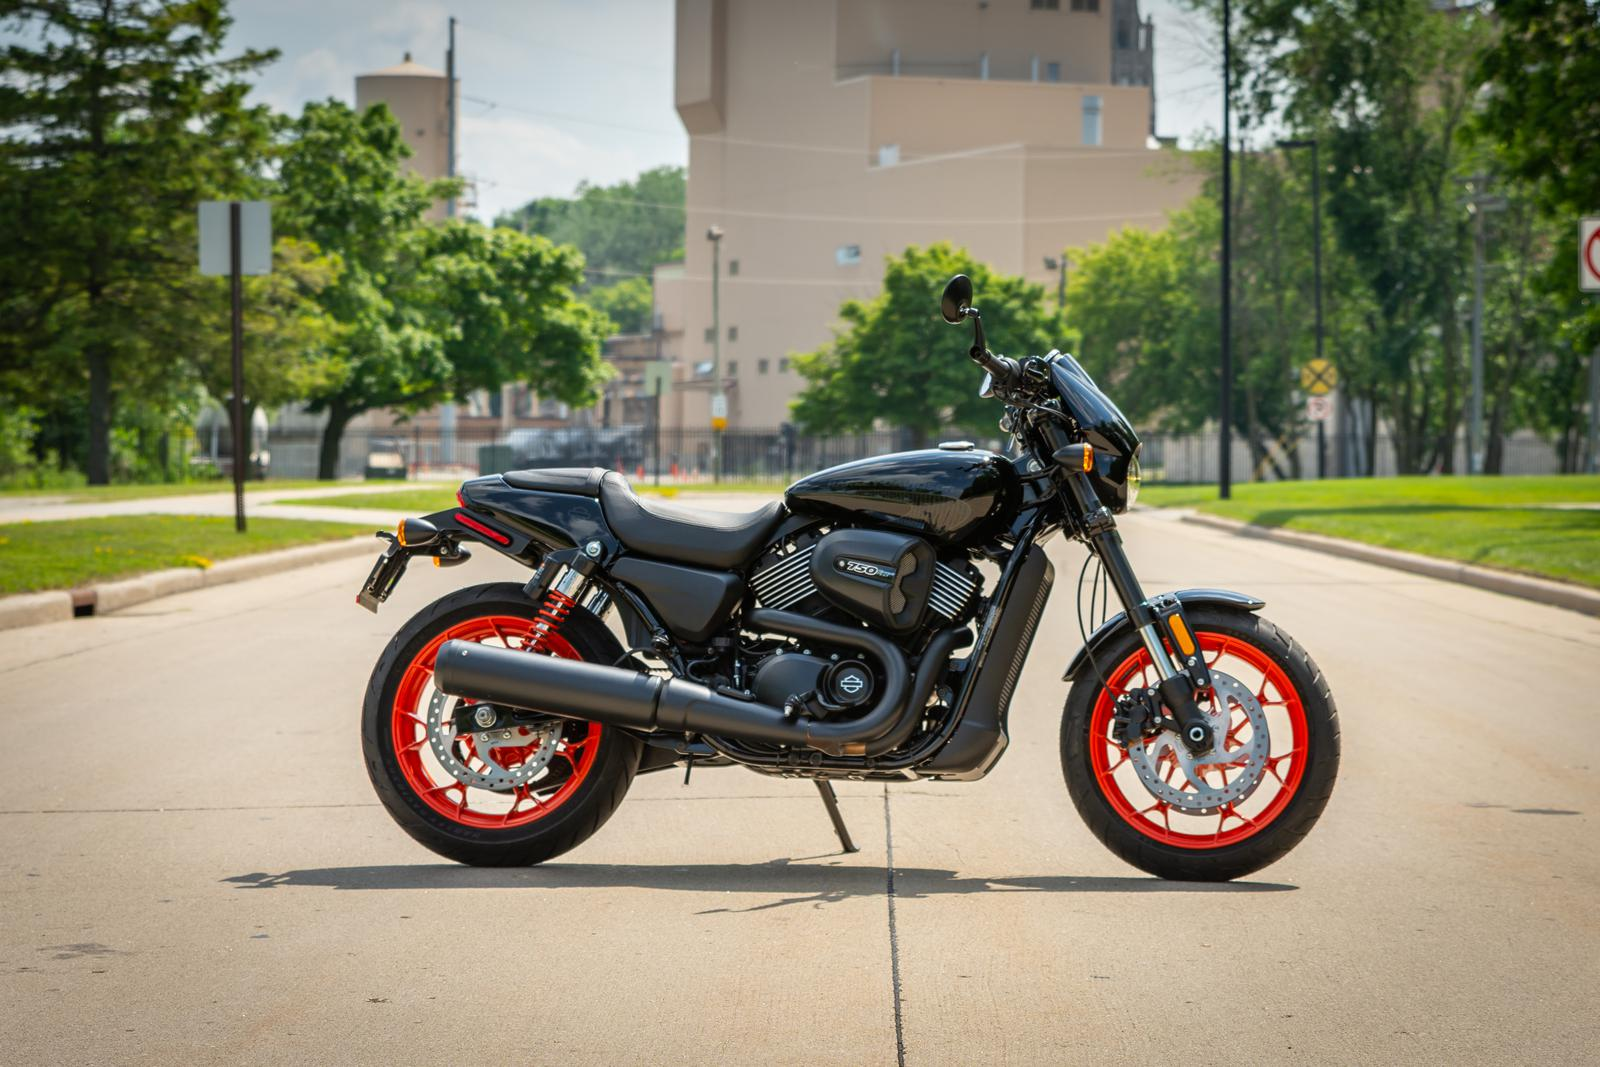 2018 Harley-Davidson® XG750A - STREET ROD for sale in Manitowoc, WI ...